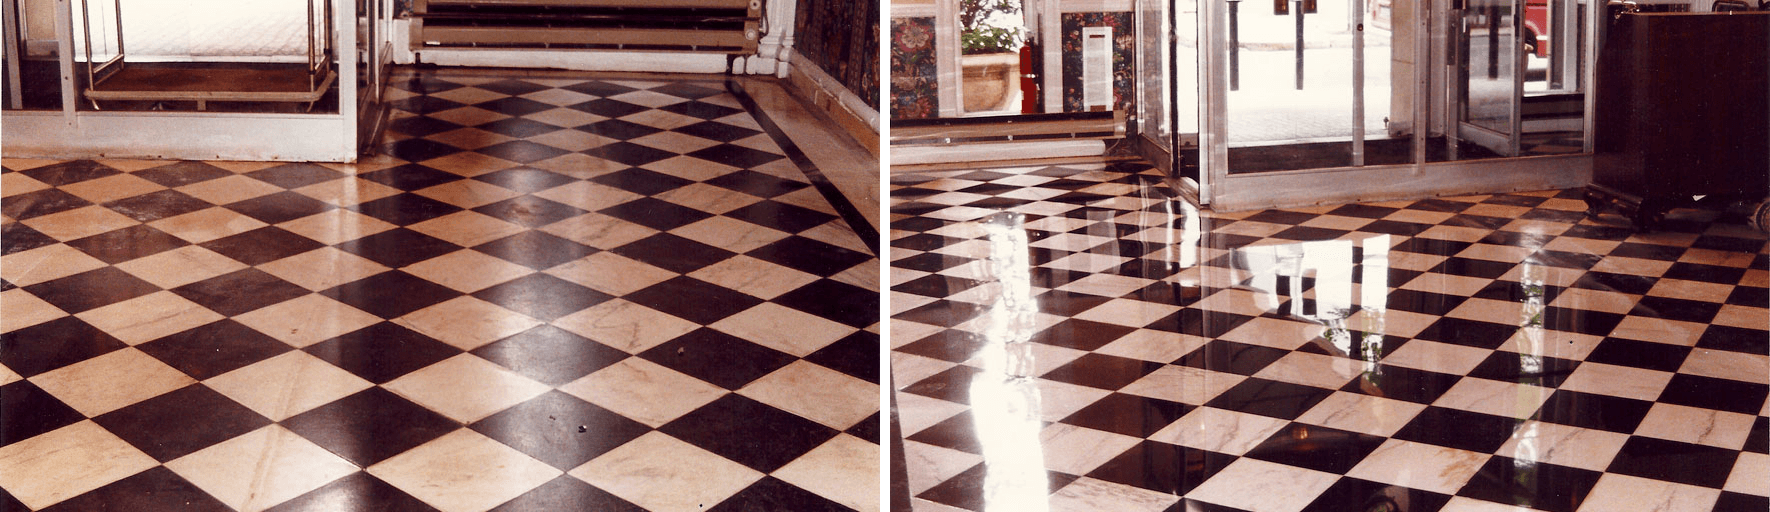 Refinished Belgium Black and Danbigh White marble flooring graces the lobby flooring of a Rittenhouse Square building.